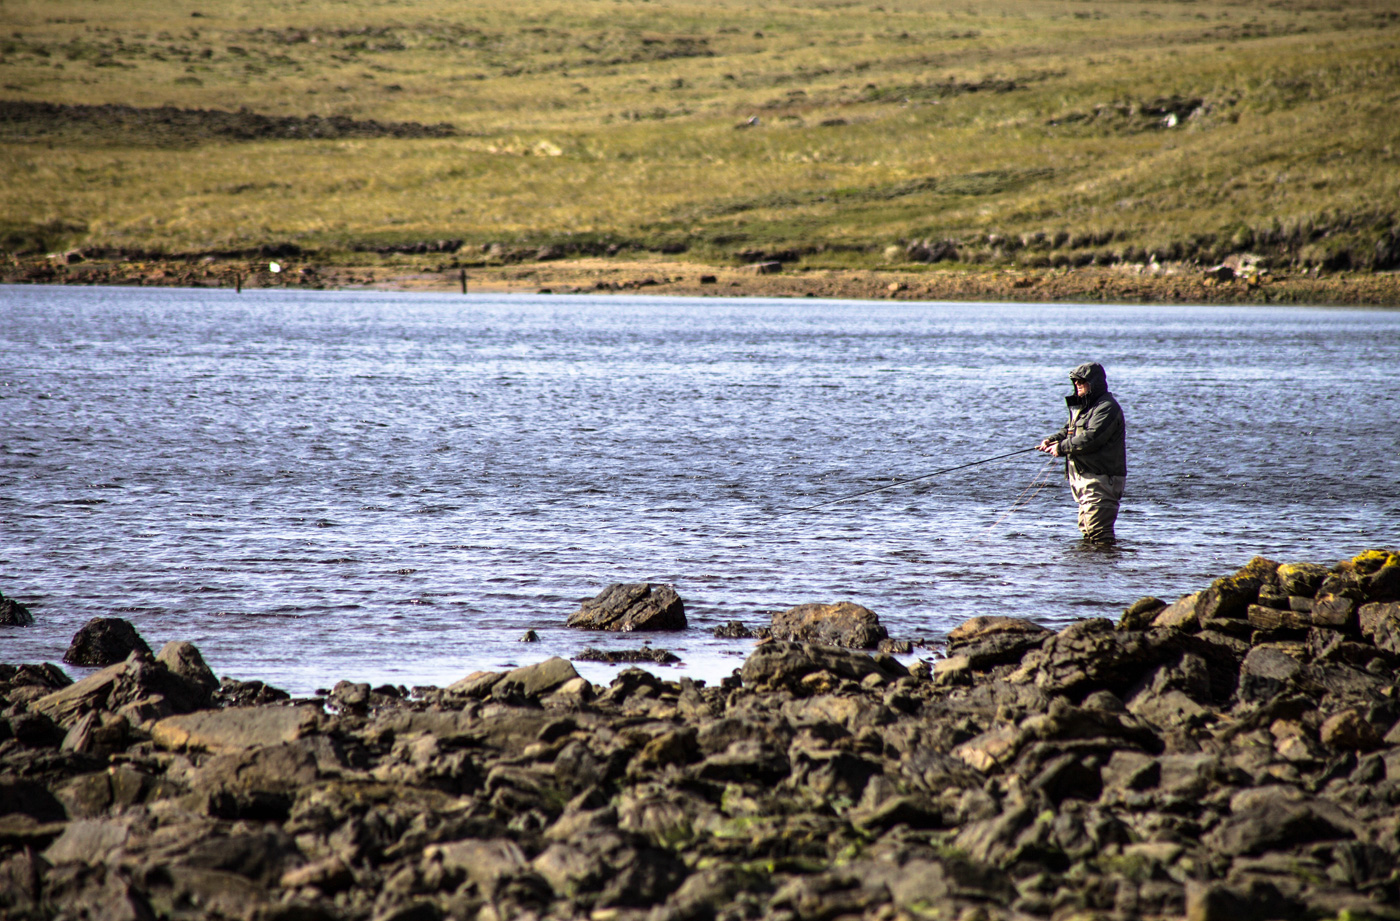 Fly Fishing on the Falkland Islands